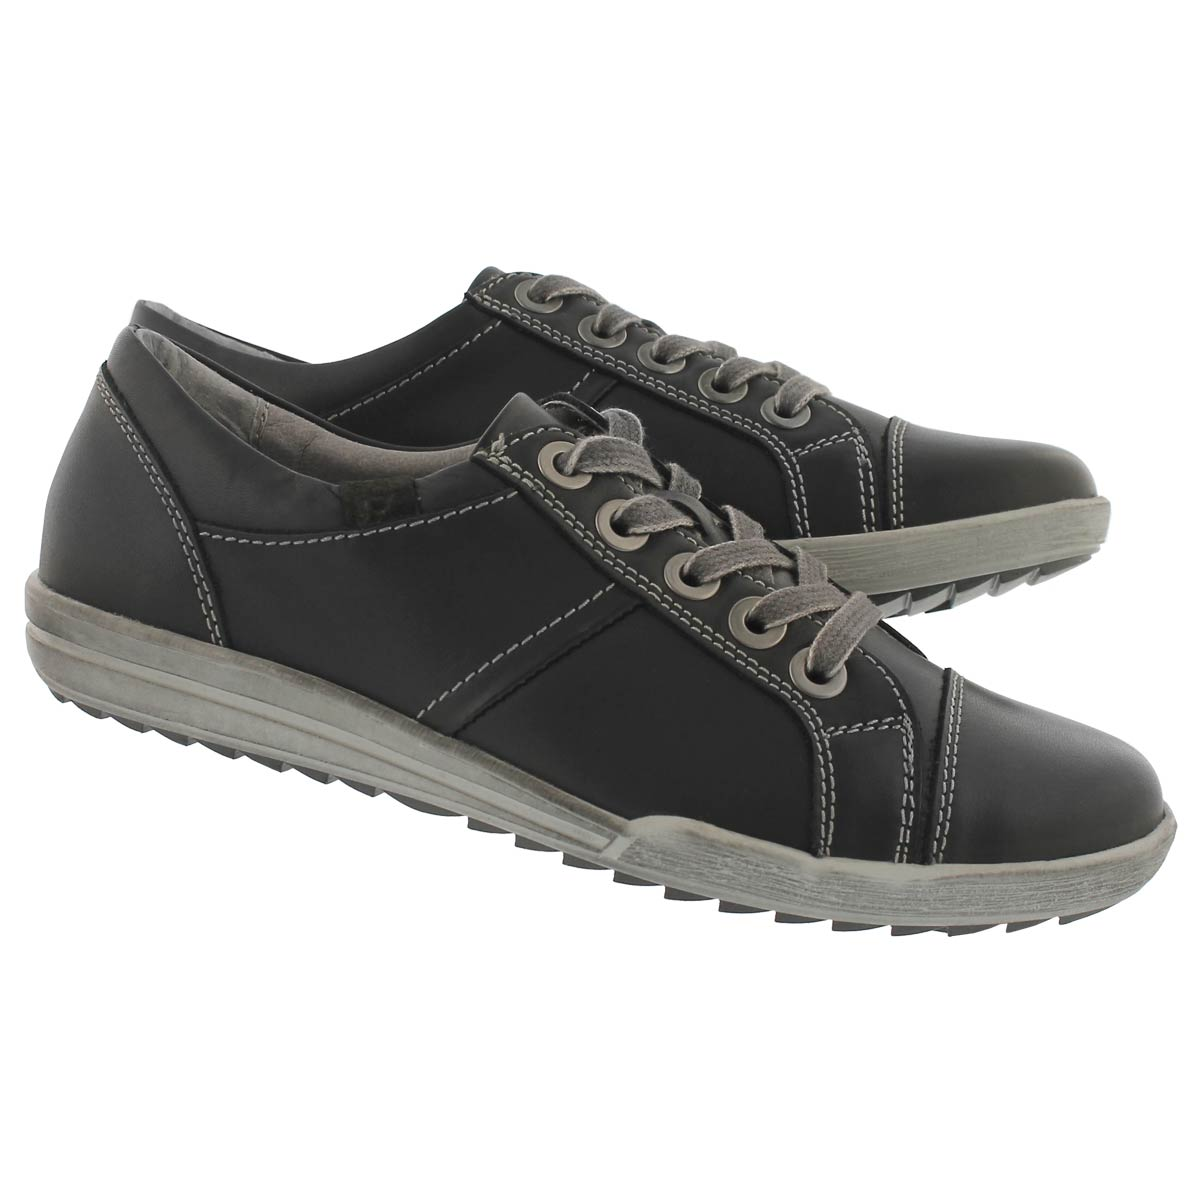 Lds Dany59 schwarz lace up casual snkr